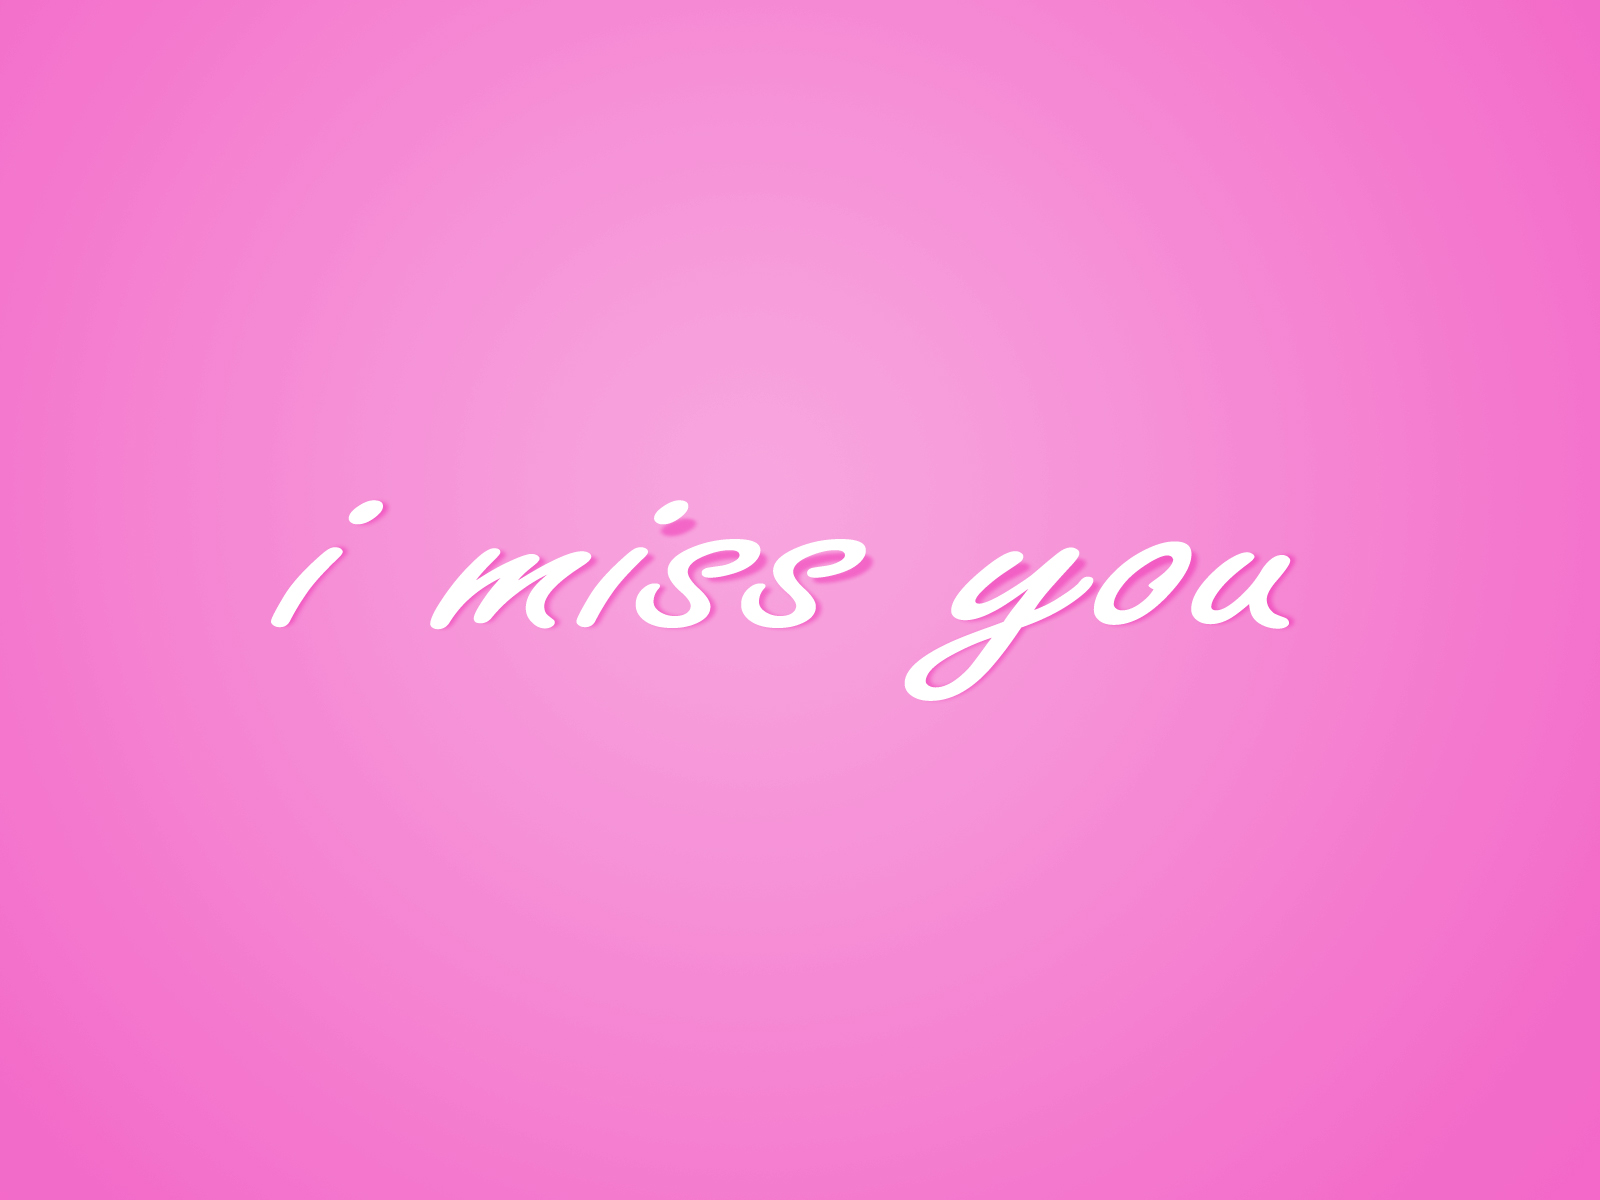 Simple I Miss You Text HD Wallpapers Download Wallpapers in HD 1600x1200